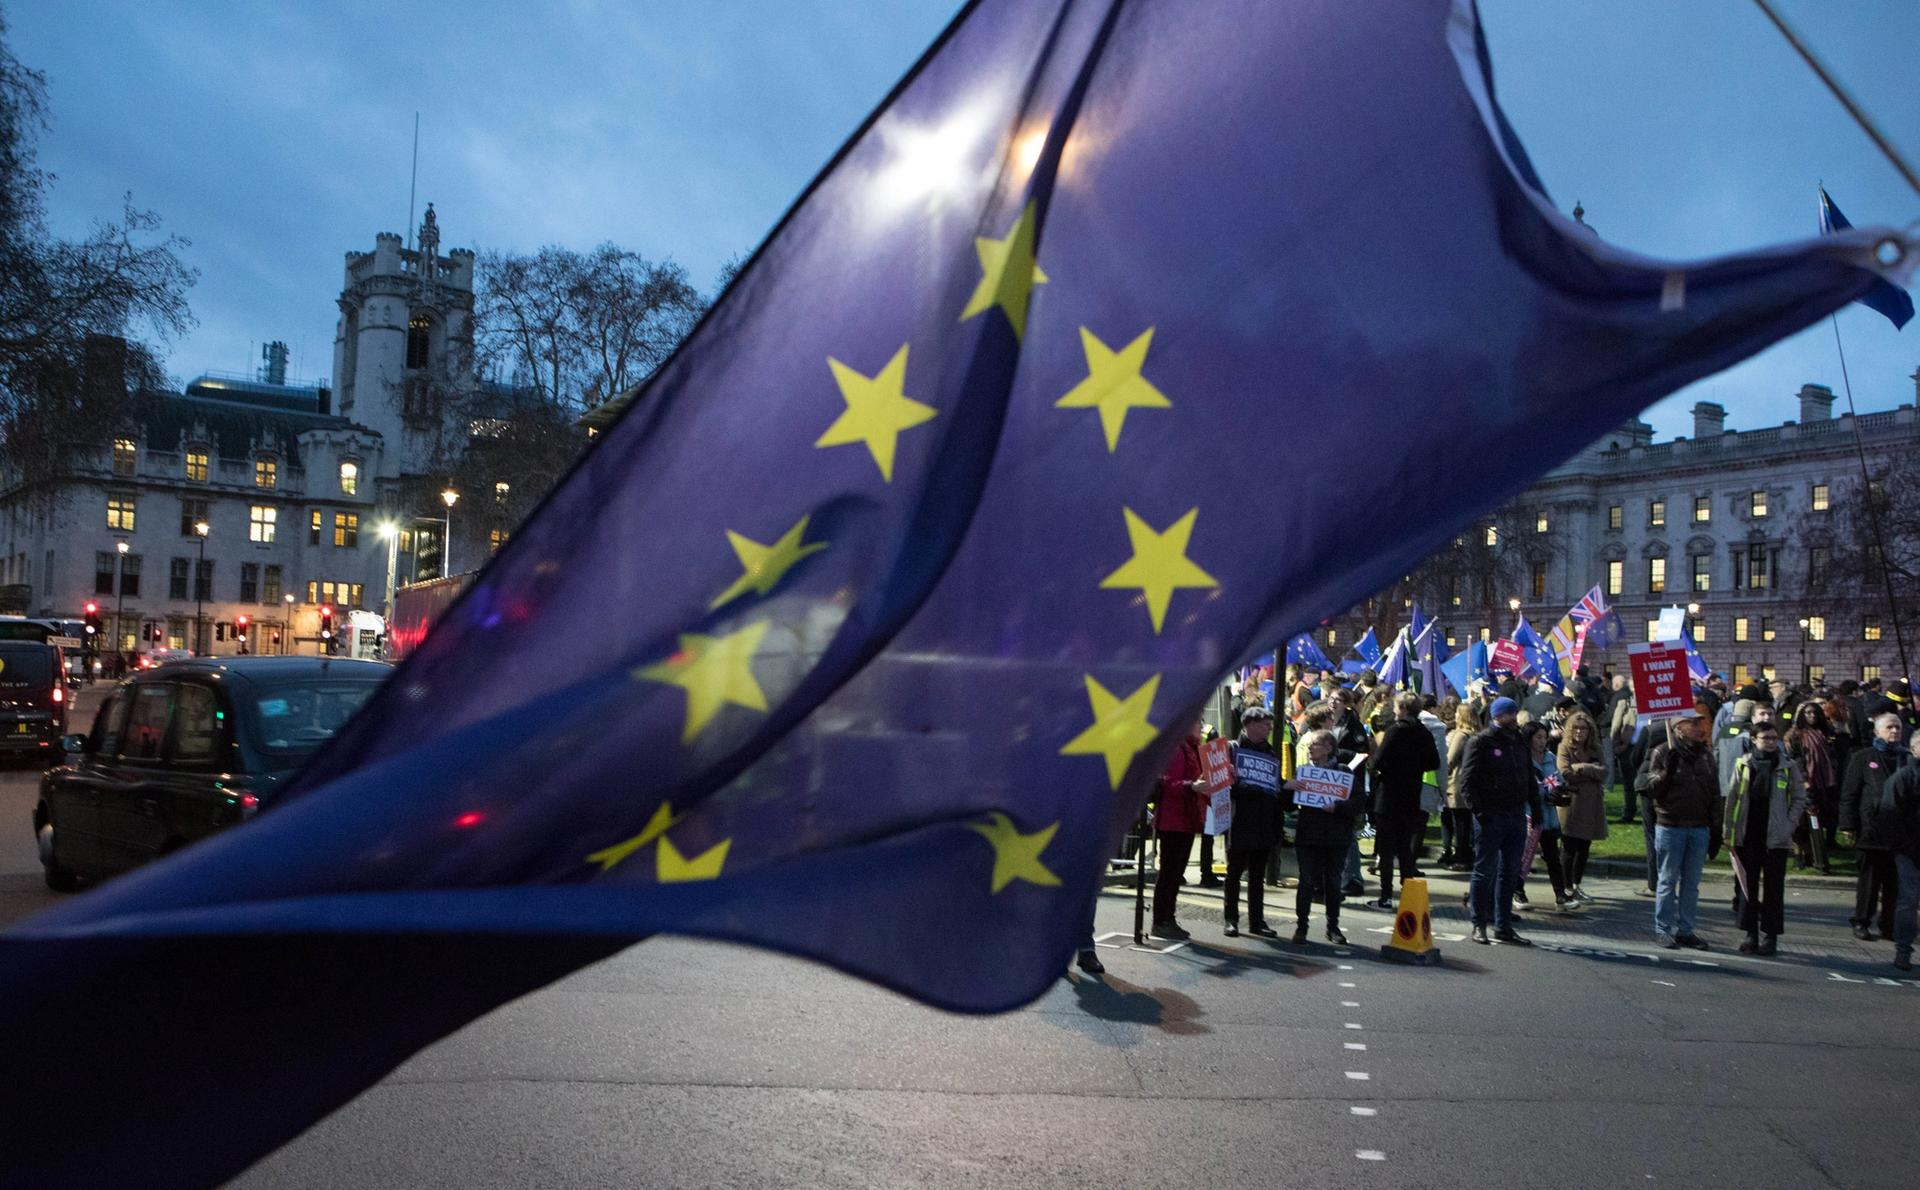 Protestors gathering both in support of and against Brexit outside the Houses of Parliament in London on 15 January Photo: © www.david-owens.co.uk